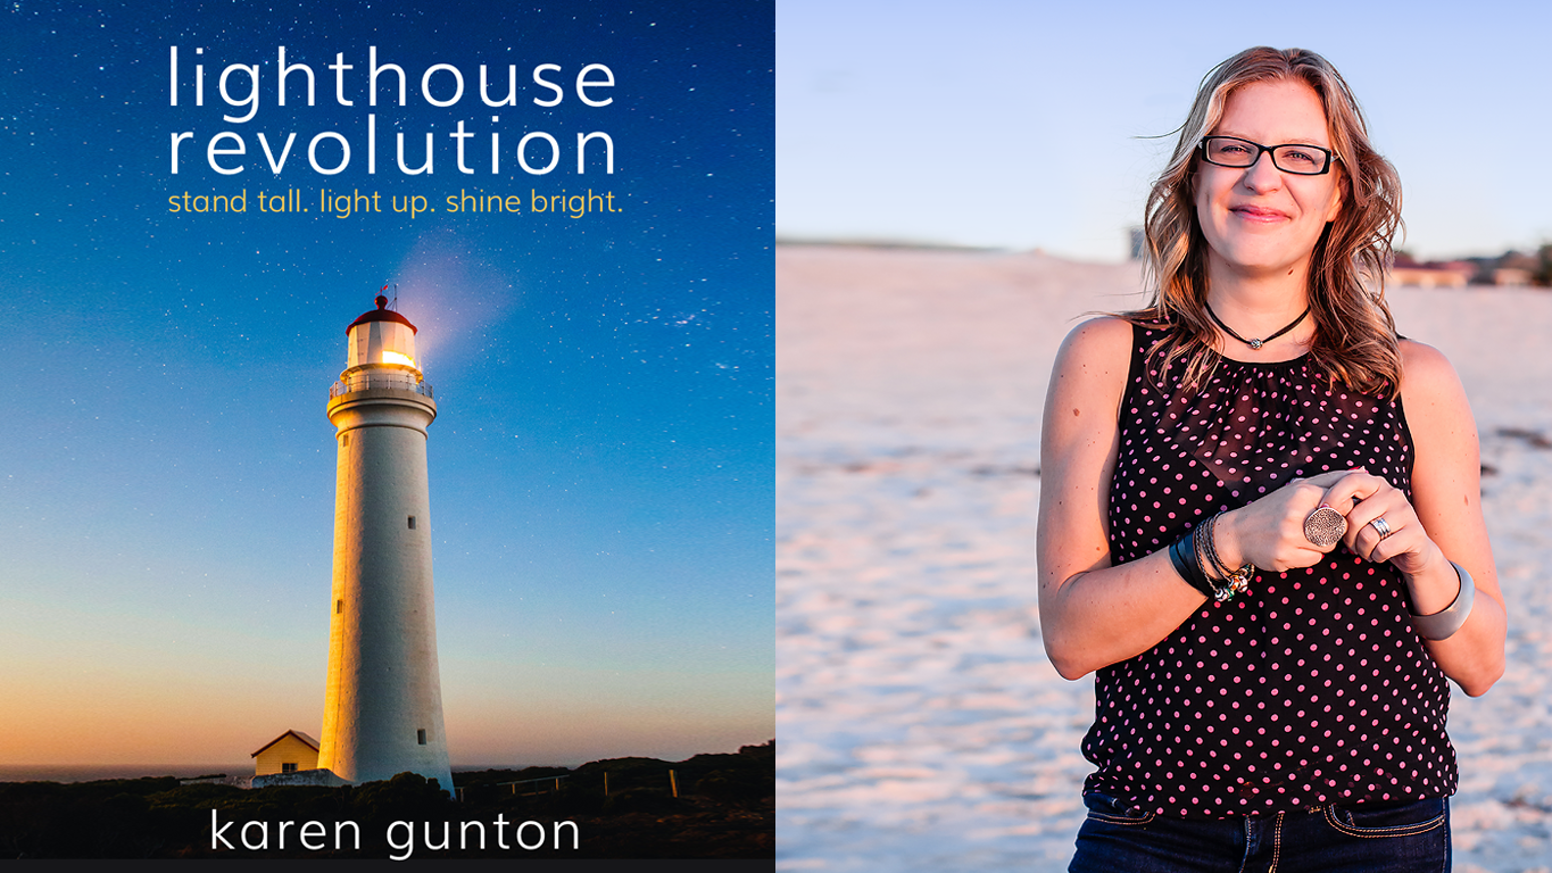 are you ready to live a life that lights you up? the lighthouse revolution book will both teach you + inspire you to shine your light.